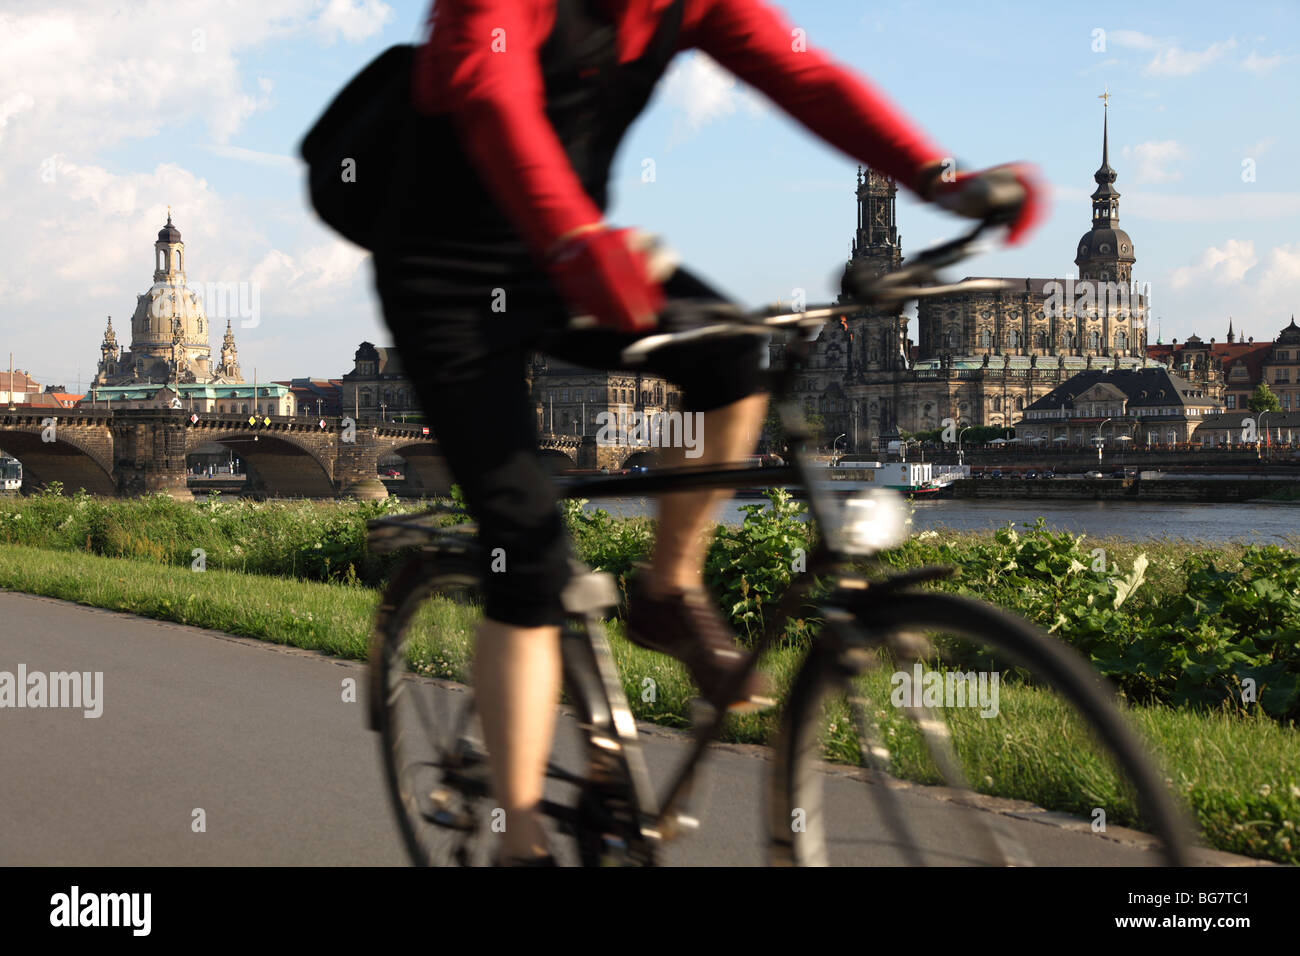 Germany, Saxony, Dresden, Old Town, Bike Riding along the River Elbe - Stock Image